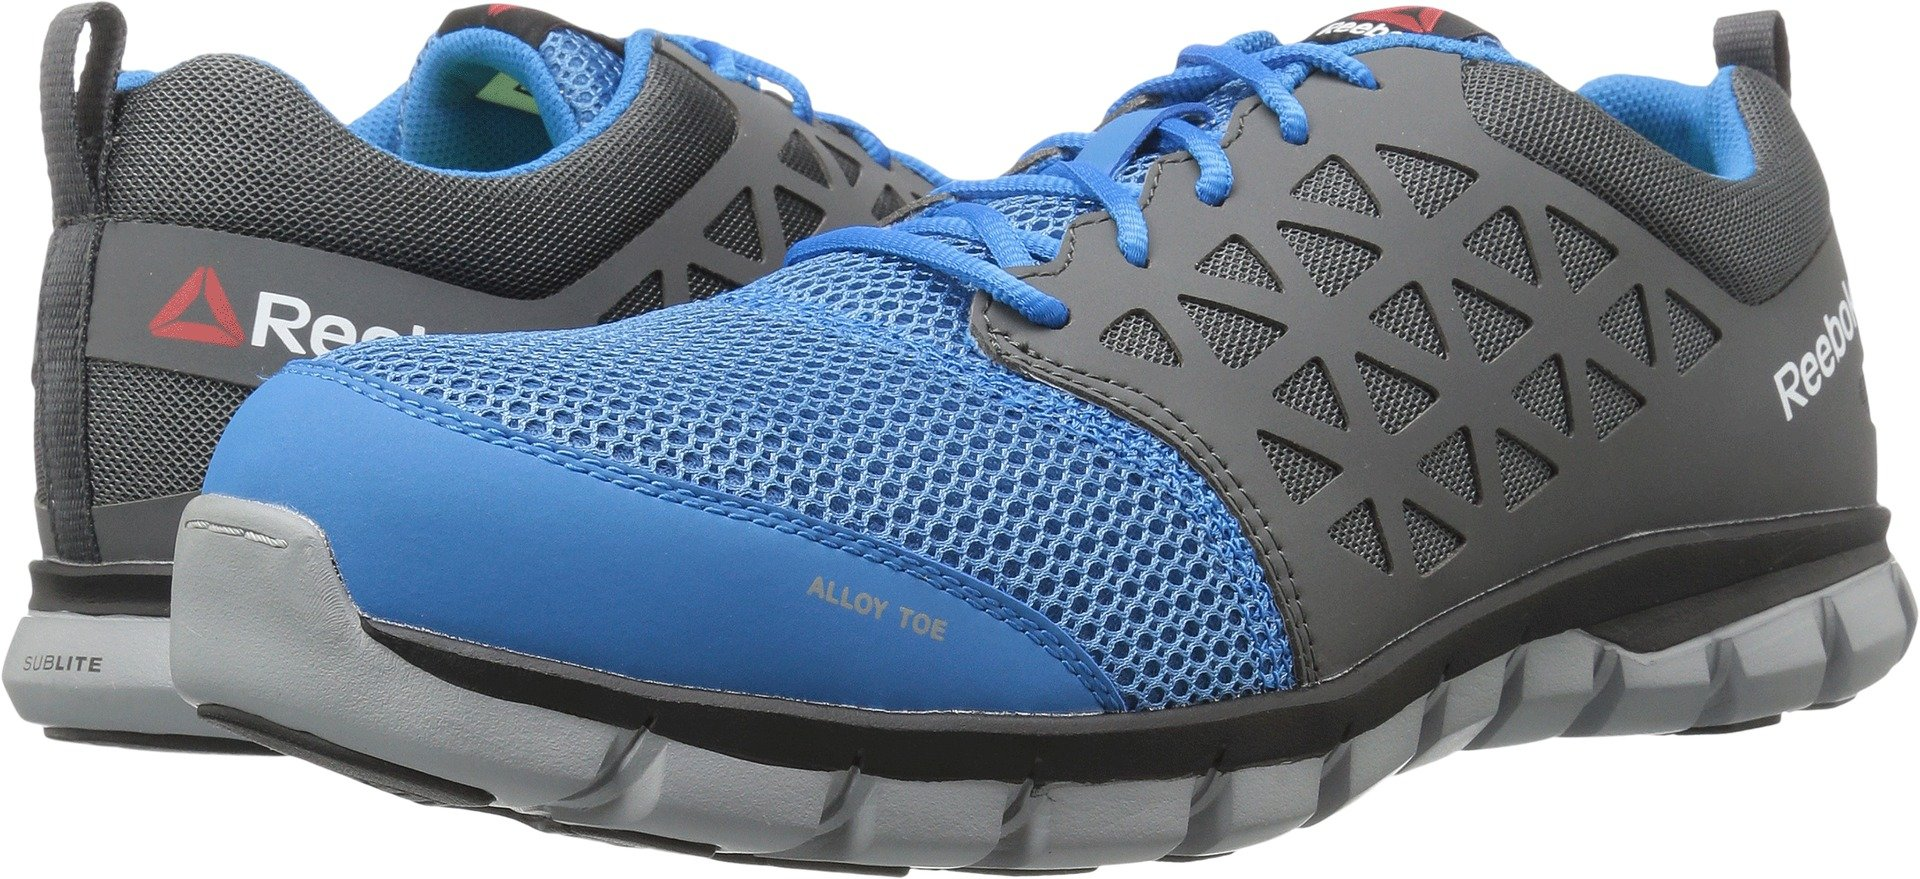 Reebok Work Men's Sublite Cushion Work RB4040 Industrial and Construction Shoe, Blue/Grey, 10 W US by Reebok Work